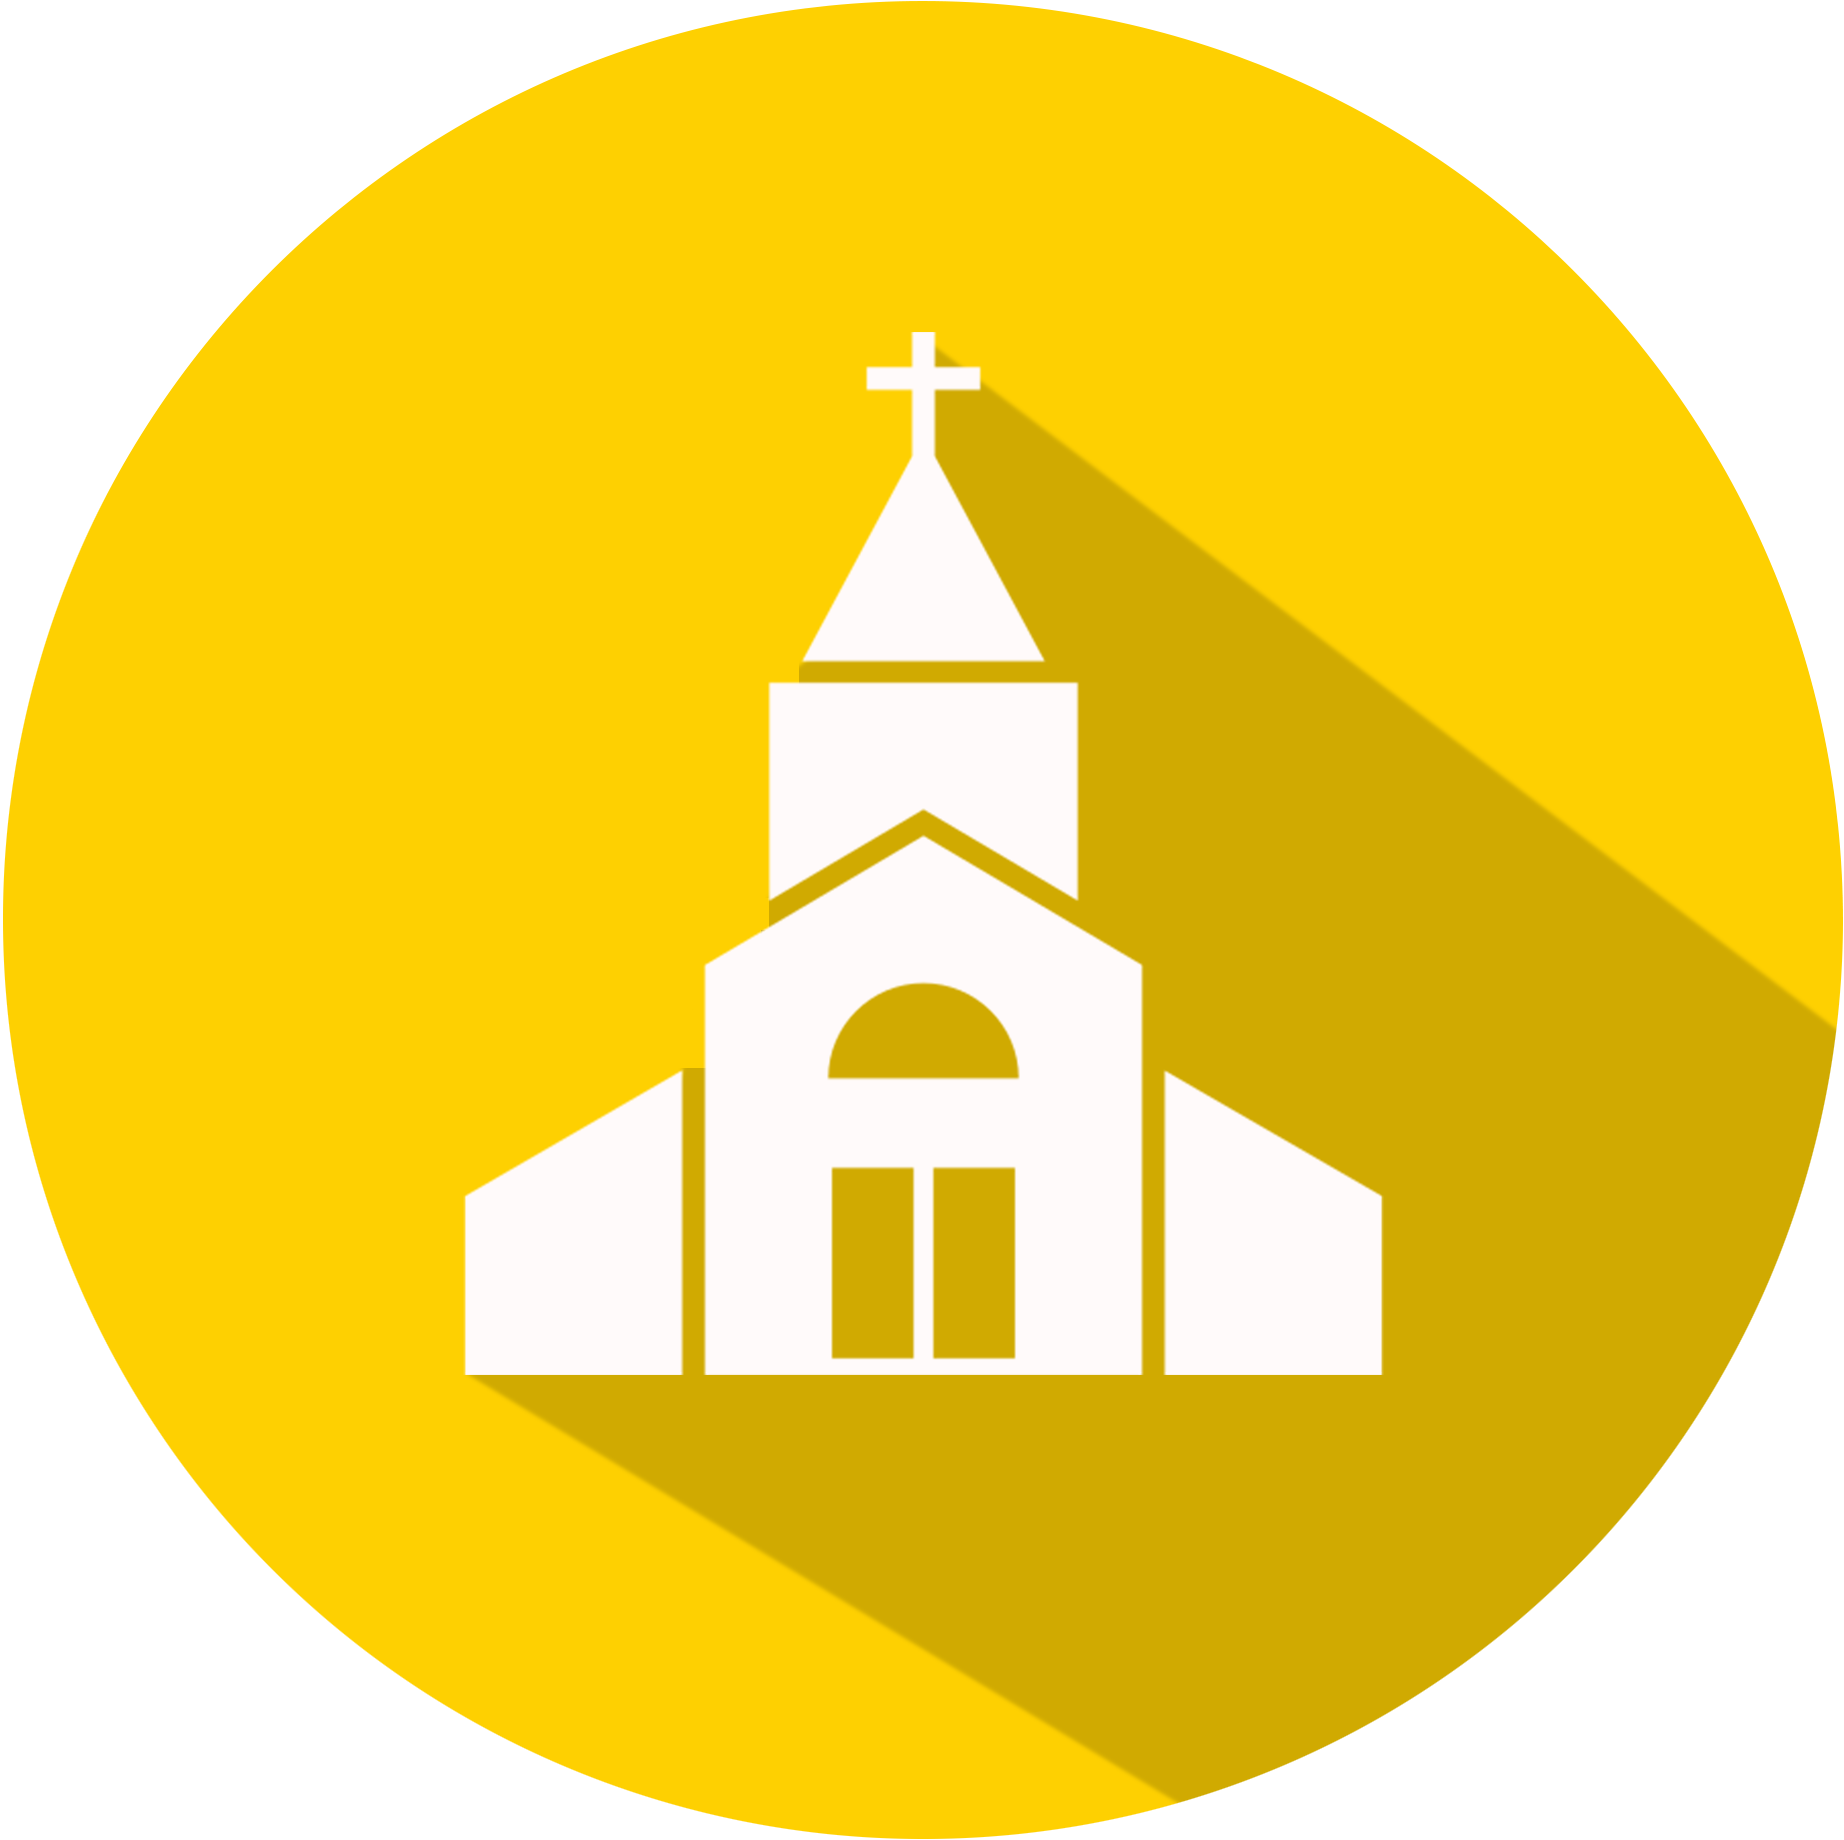 Planting Churches - We are church-planting missionaries. Where Christ's message is proclaimed, His disciples are present, and His two ordinances are received, there is Christ's church. Our goal is to plant self-supporting churches governed by Scripture alone and led by national pastors.